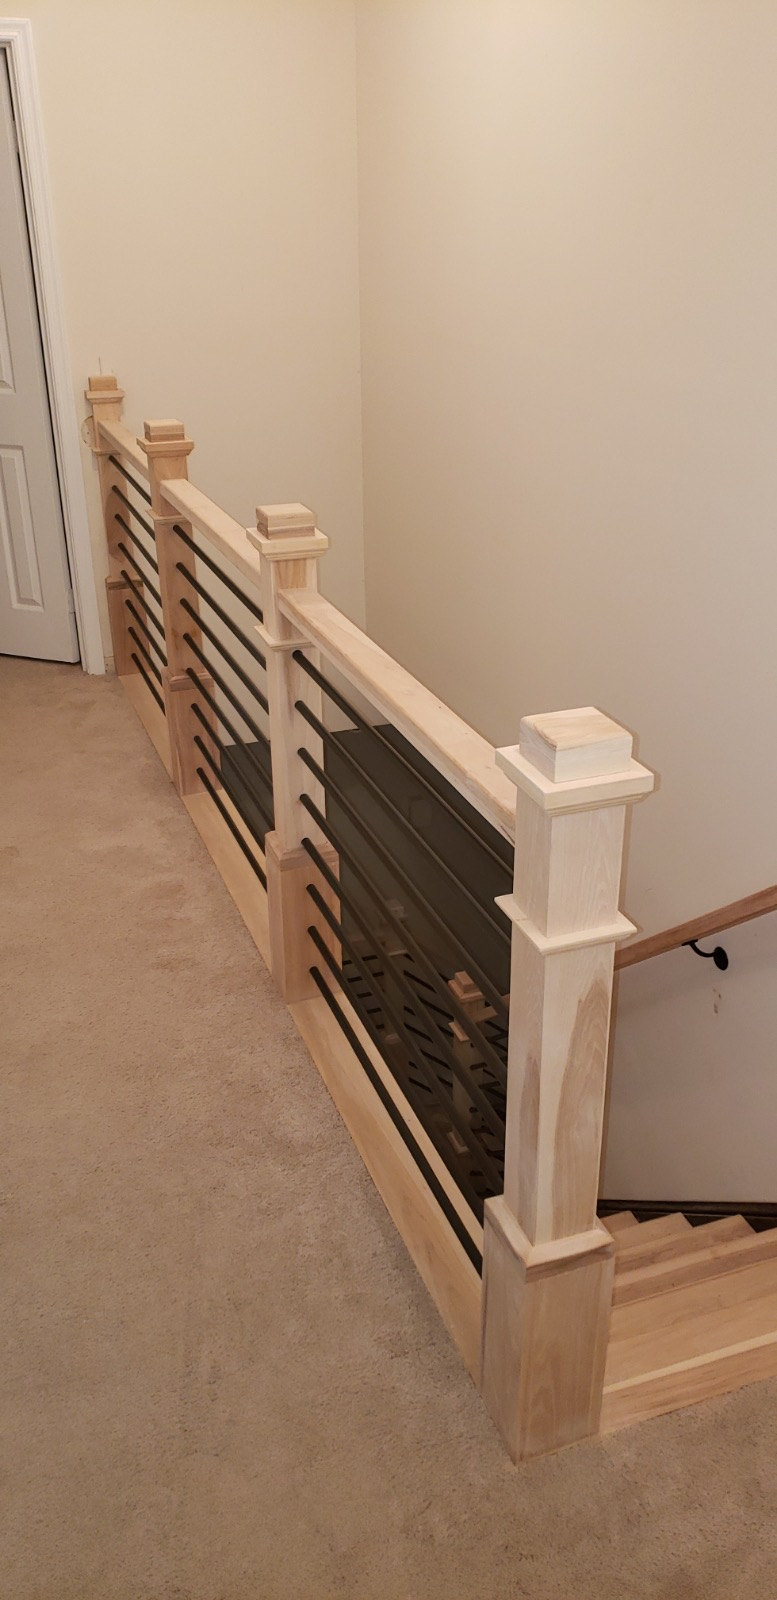 Hickory Stairs with Horizontal Metal Balusters